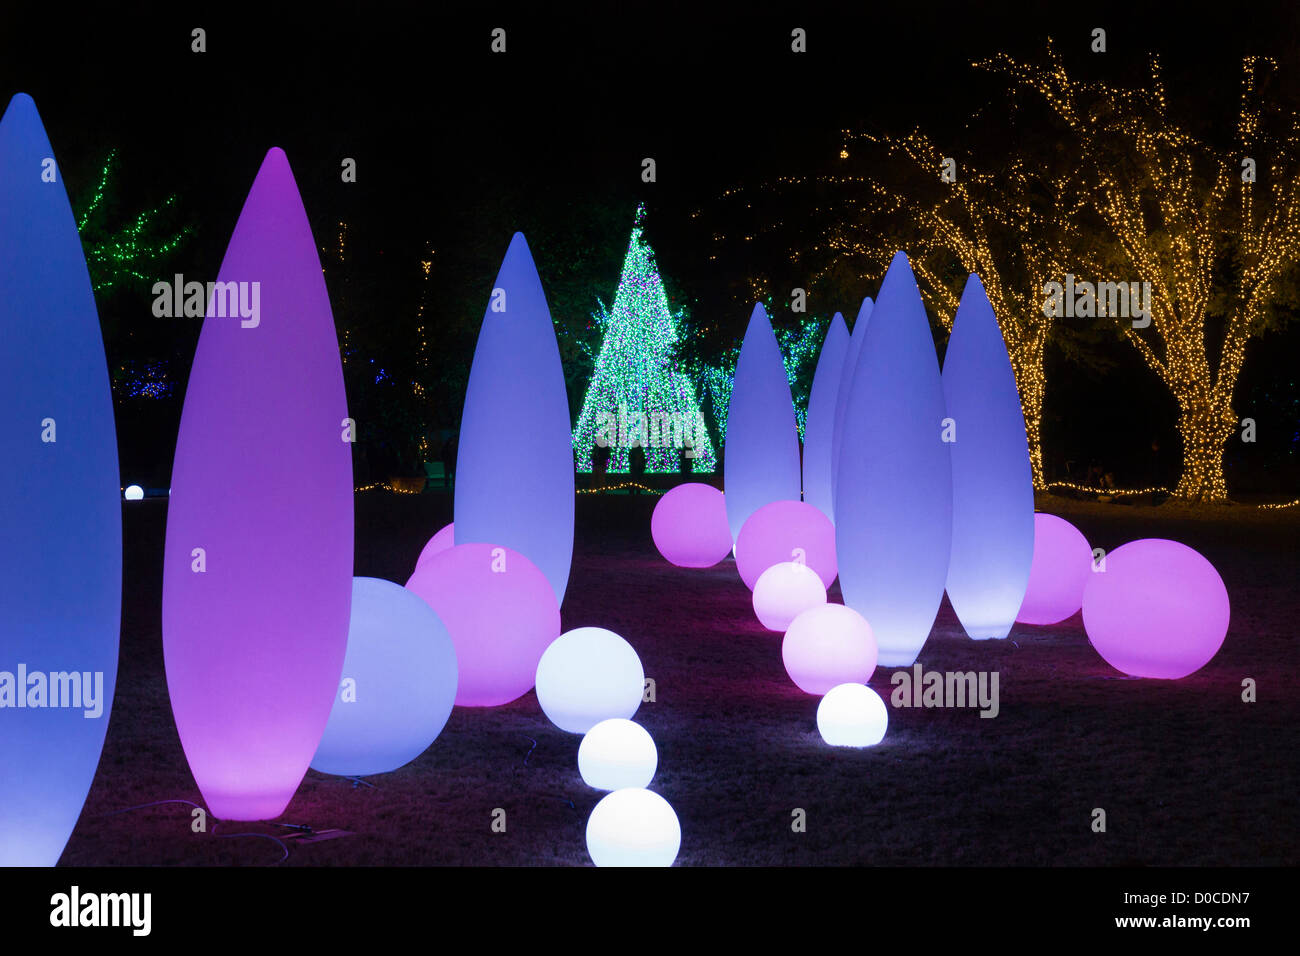 Atlanta Botanical Garden (Georgia, USA) launched holiday Christmas ...